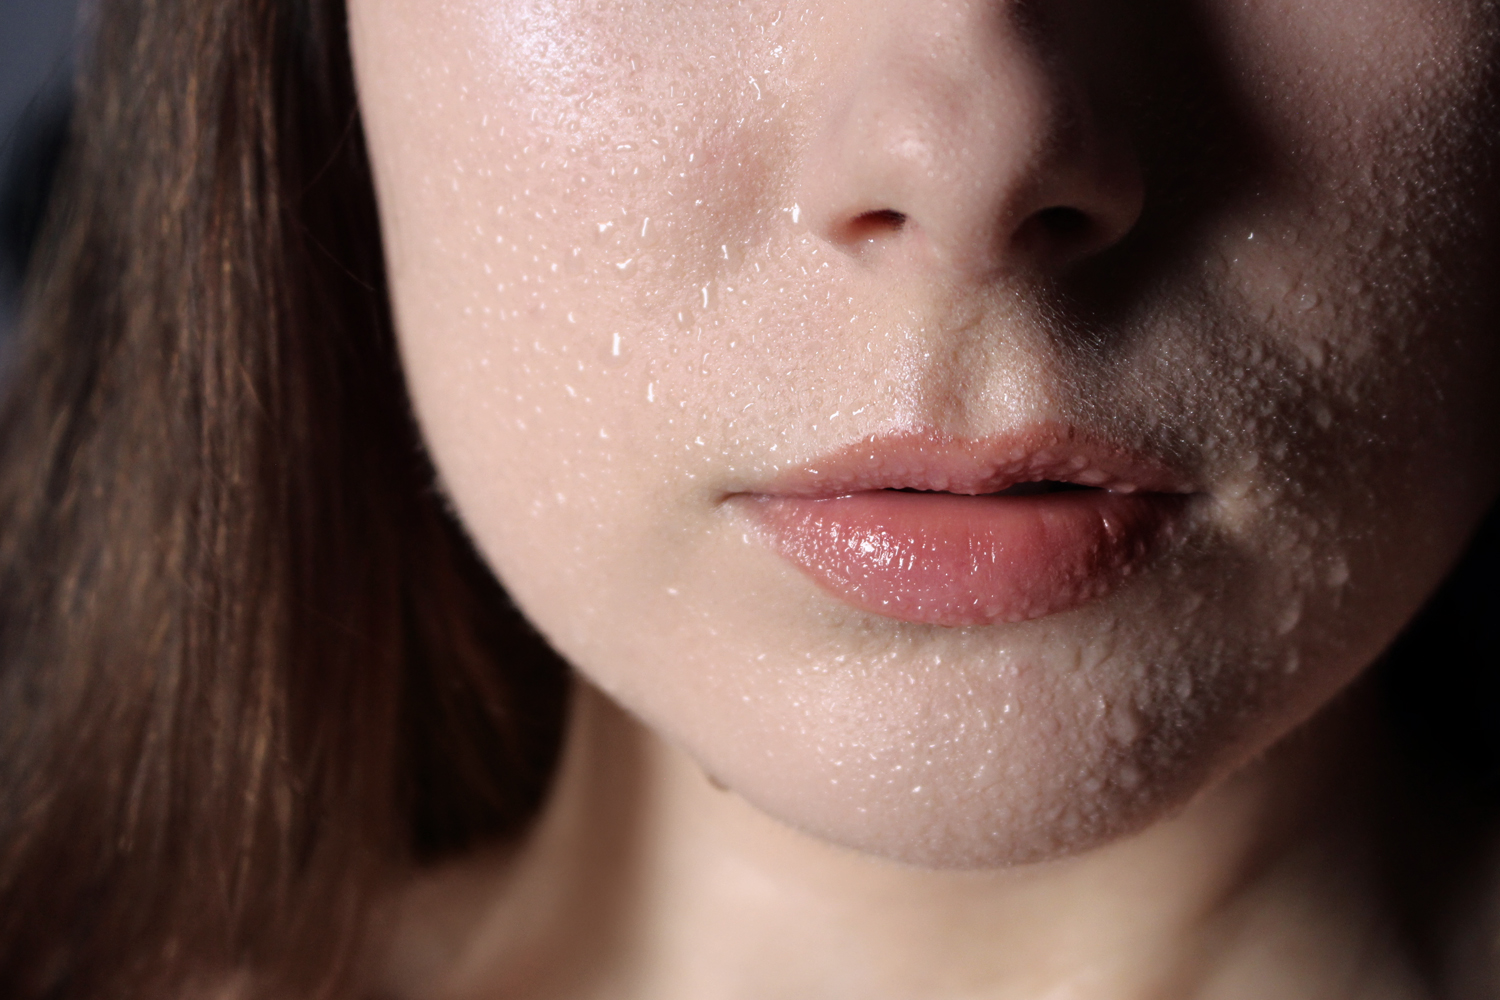 a closeup of a woman's chin with water droplets all over the skin